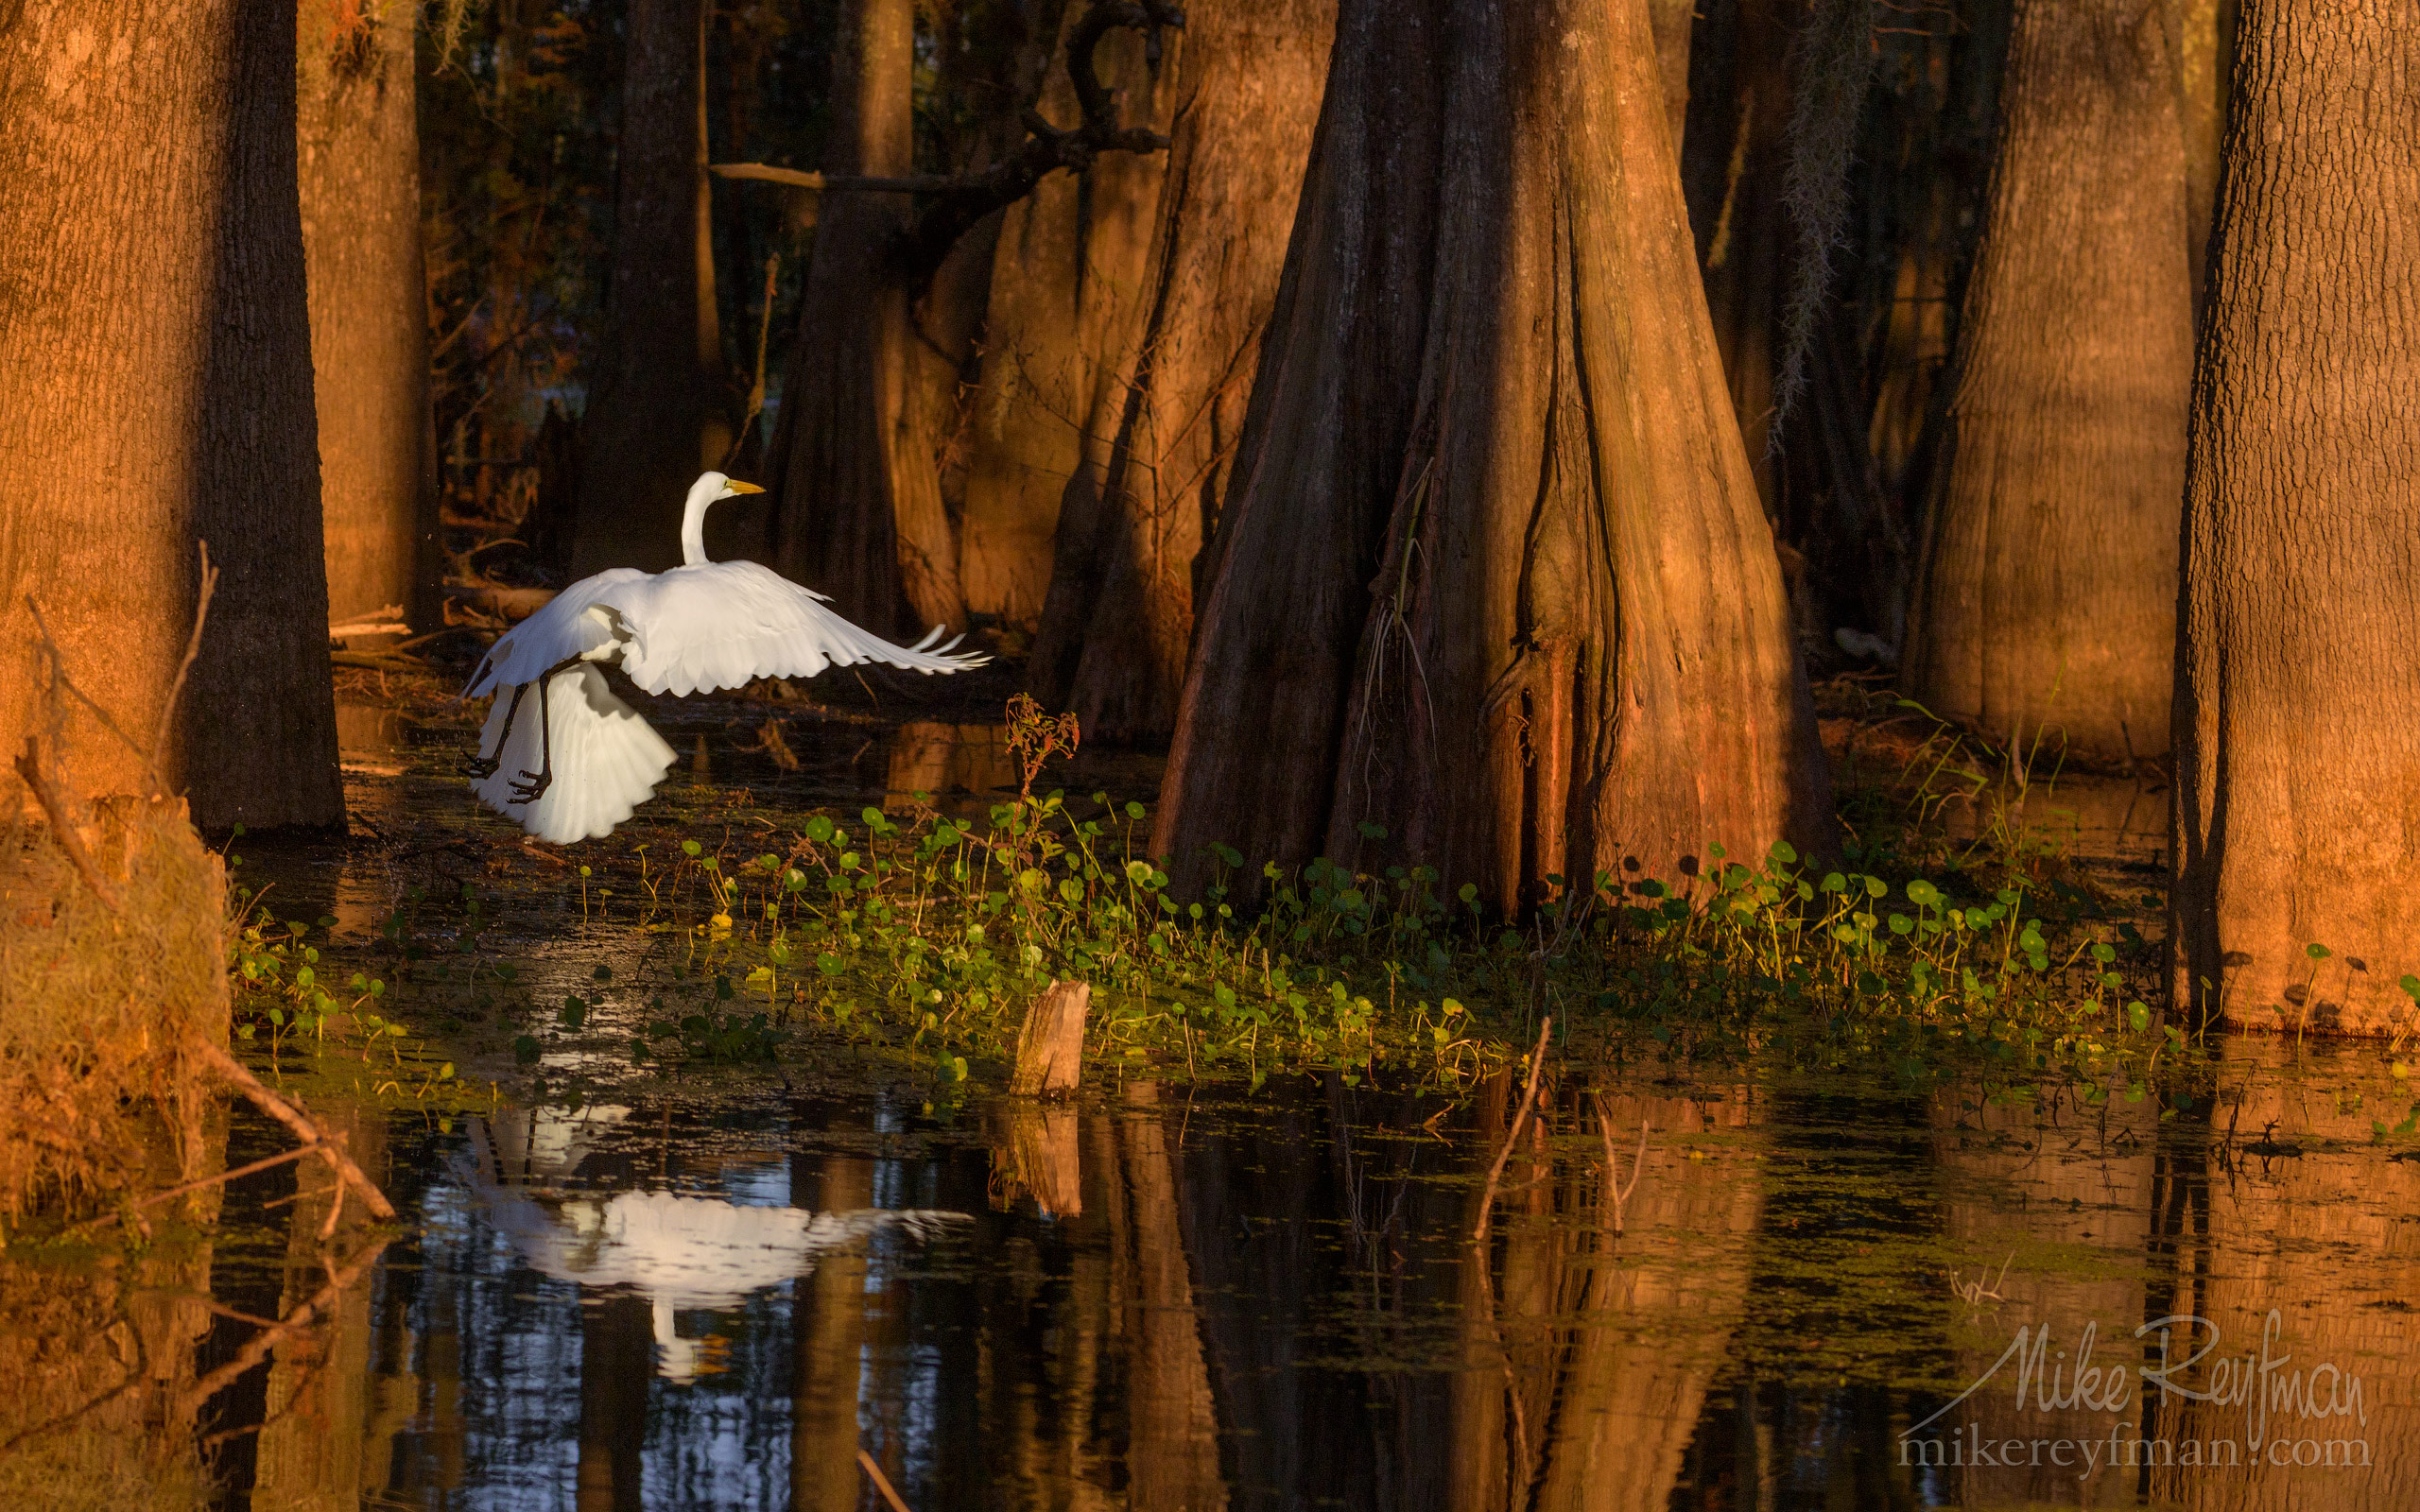 Great Egret with the buttressed trunks of Bald Cypress and Tupelo trees in the background. Lake Martin, Louisiana, US 071-LT1-50A4108.jpg - Bold Cypress and Tupelo Trees in the swamps of Atchafalaya River Basin. Caddo, Martin and Fousse Lakes. Texas/Louisiana, USA. - Mike Reyfman Photography